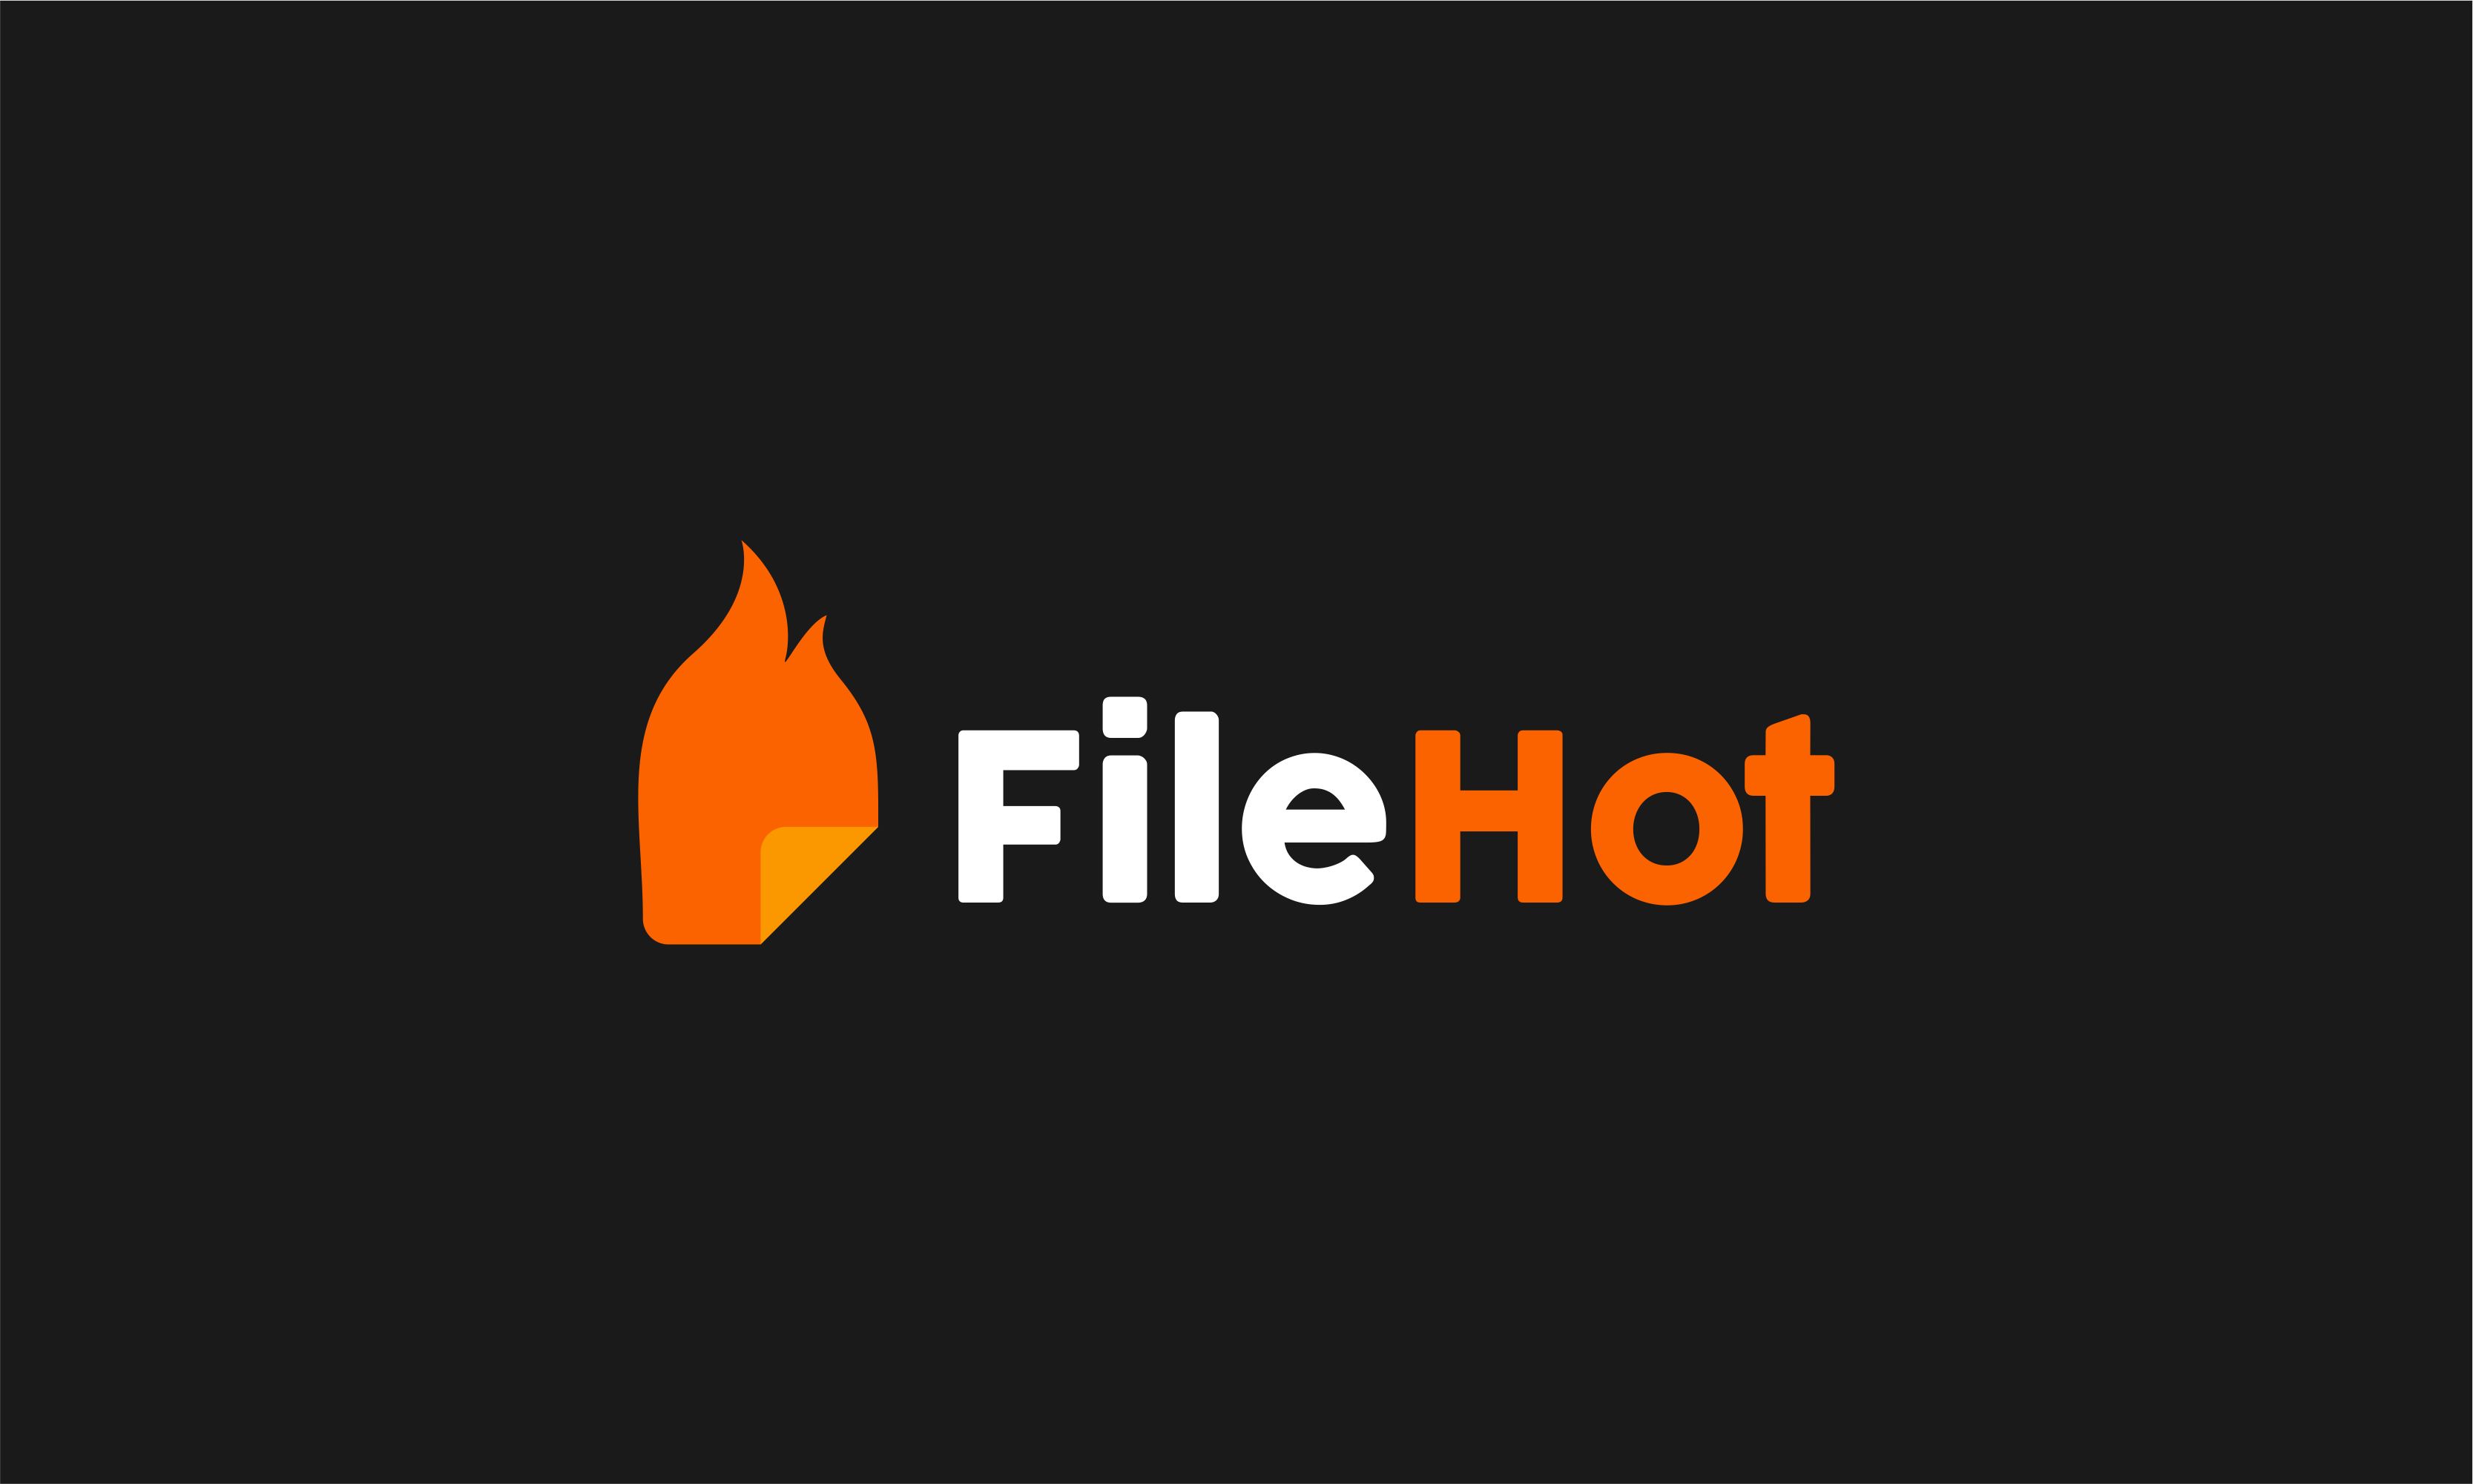 Filehot - Media product name for sale